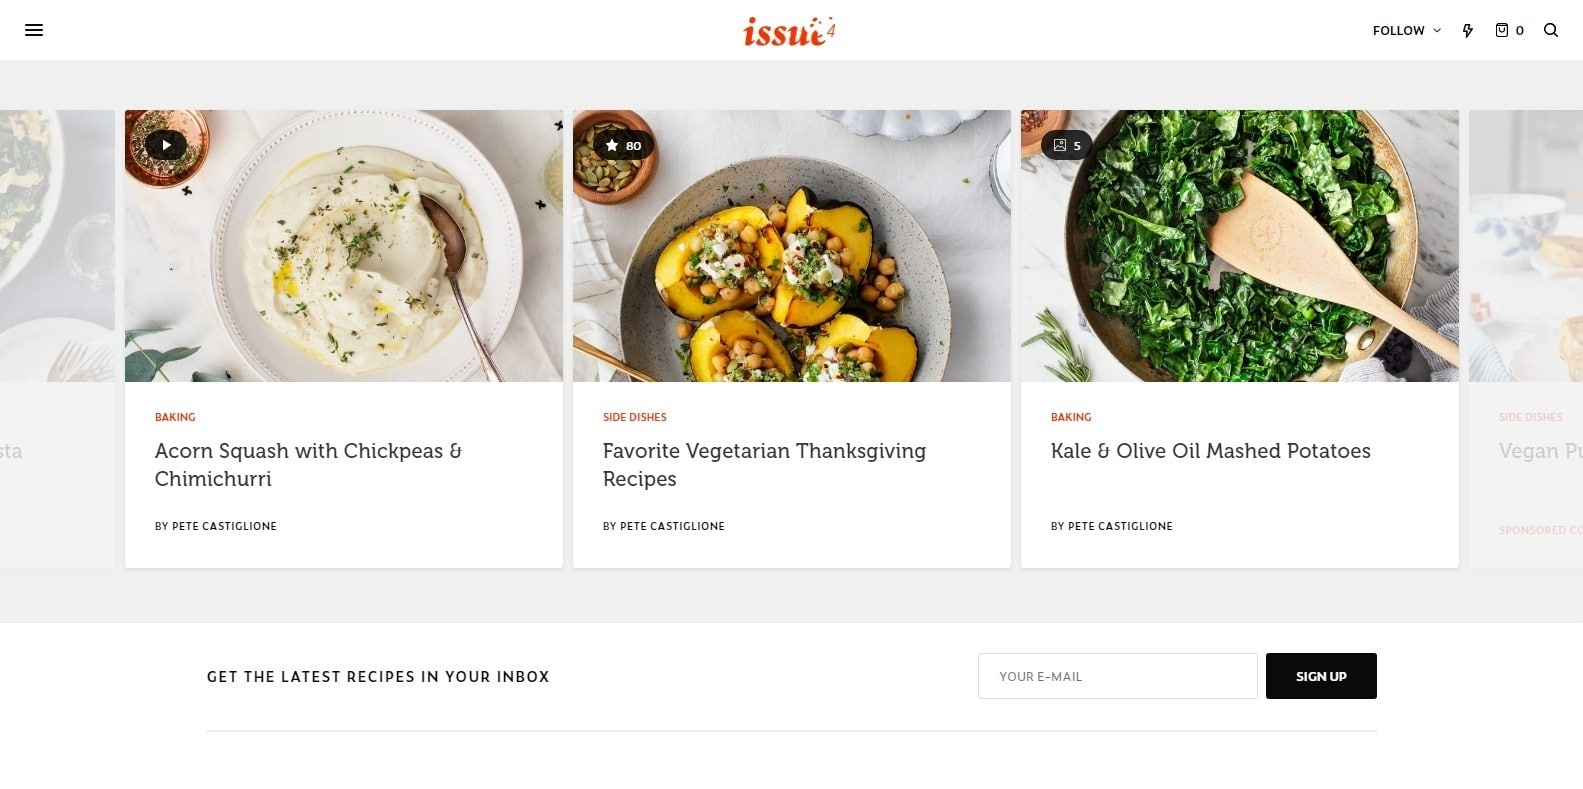 the-issue-food-blog-website-template